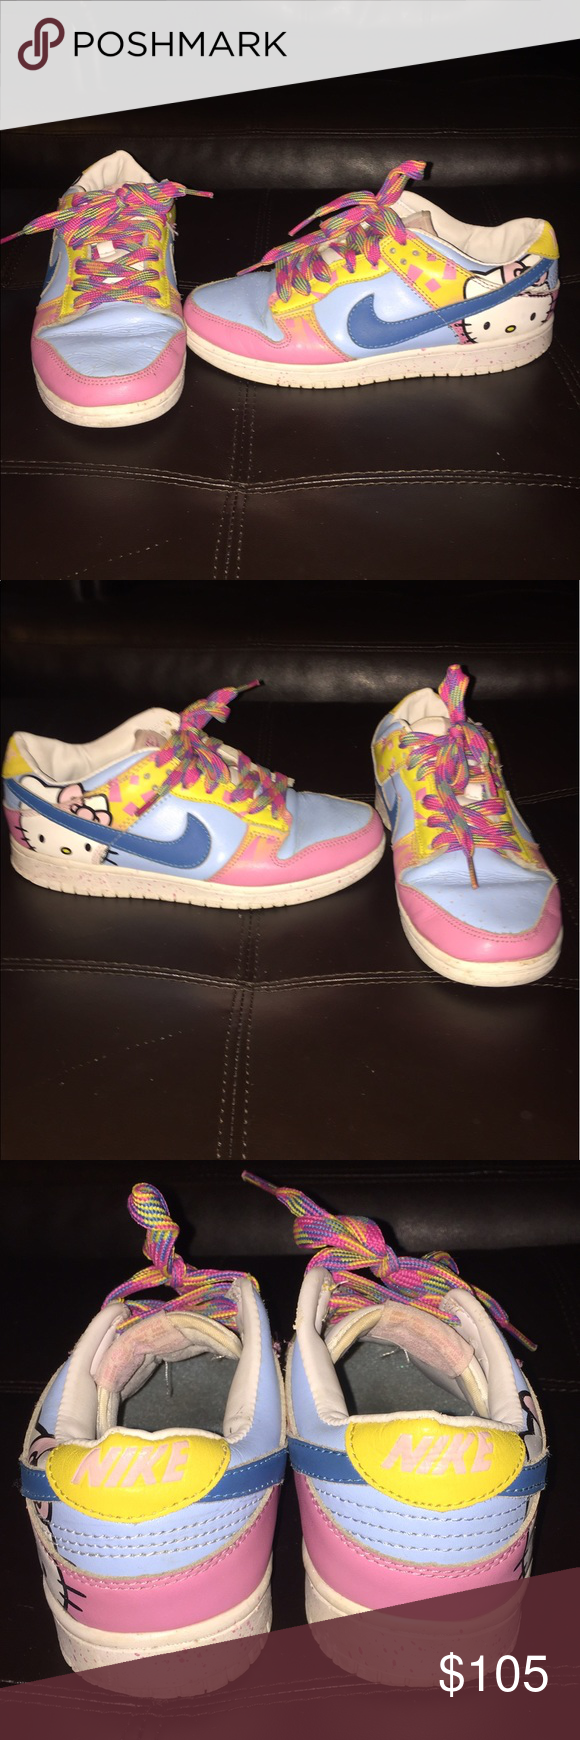 wholesale dealer 22c51 dfa2c Authentic RARE Hello Kitty Nike Air Force 1s Sz 8 RARE Hello Kitty Air  Force 1s by Nike in girls 5.5 which is like a 7-7.5 in womens Nike Shoes  Sneakers